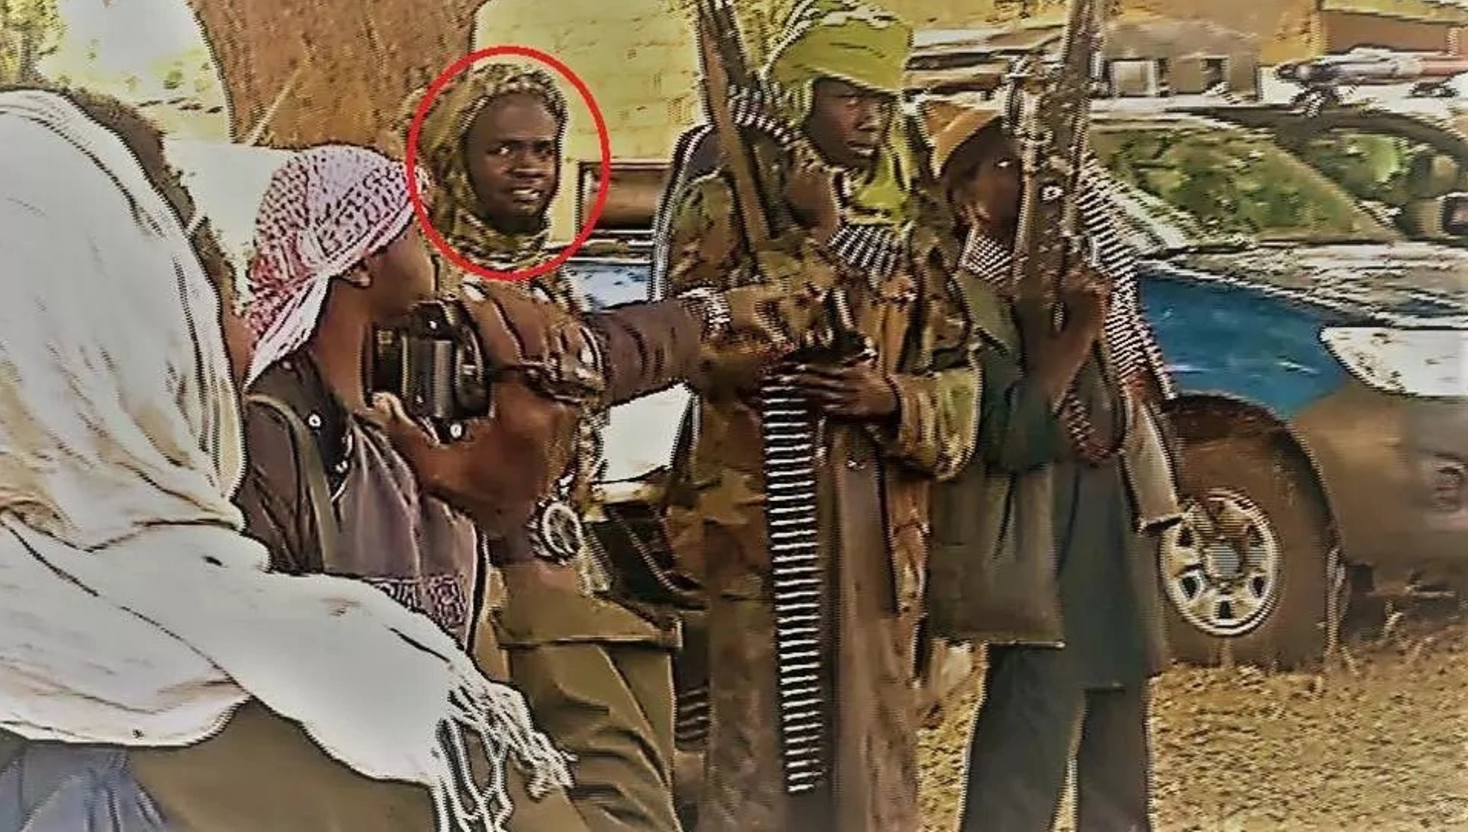 Boko Haram is the most lethal terror group in the world